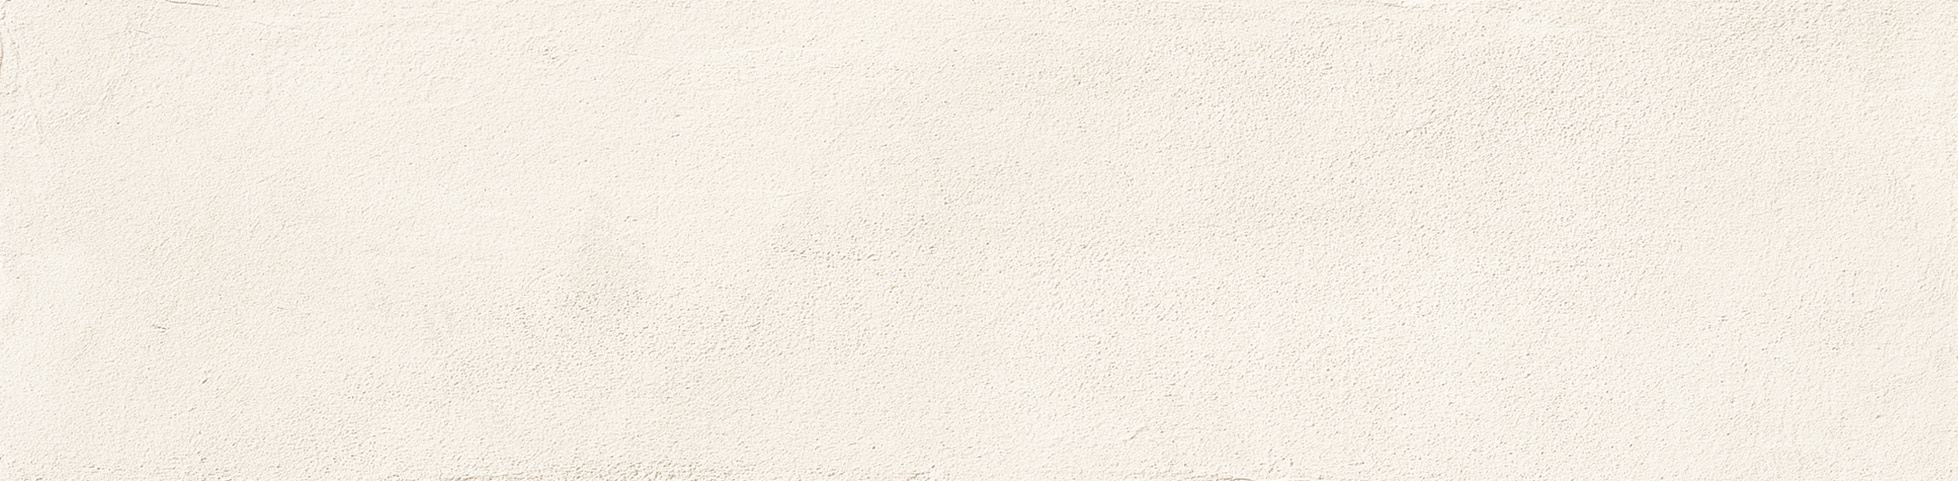 Bricktrend Almond by Marquis Collection 3